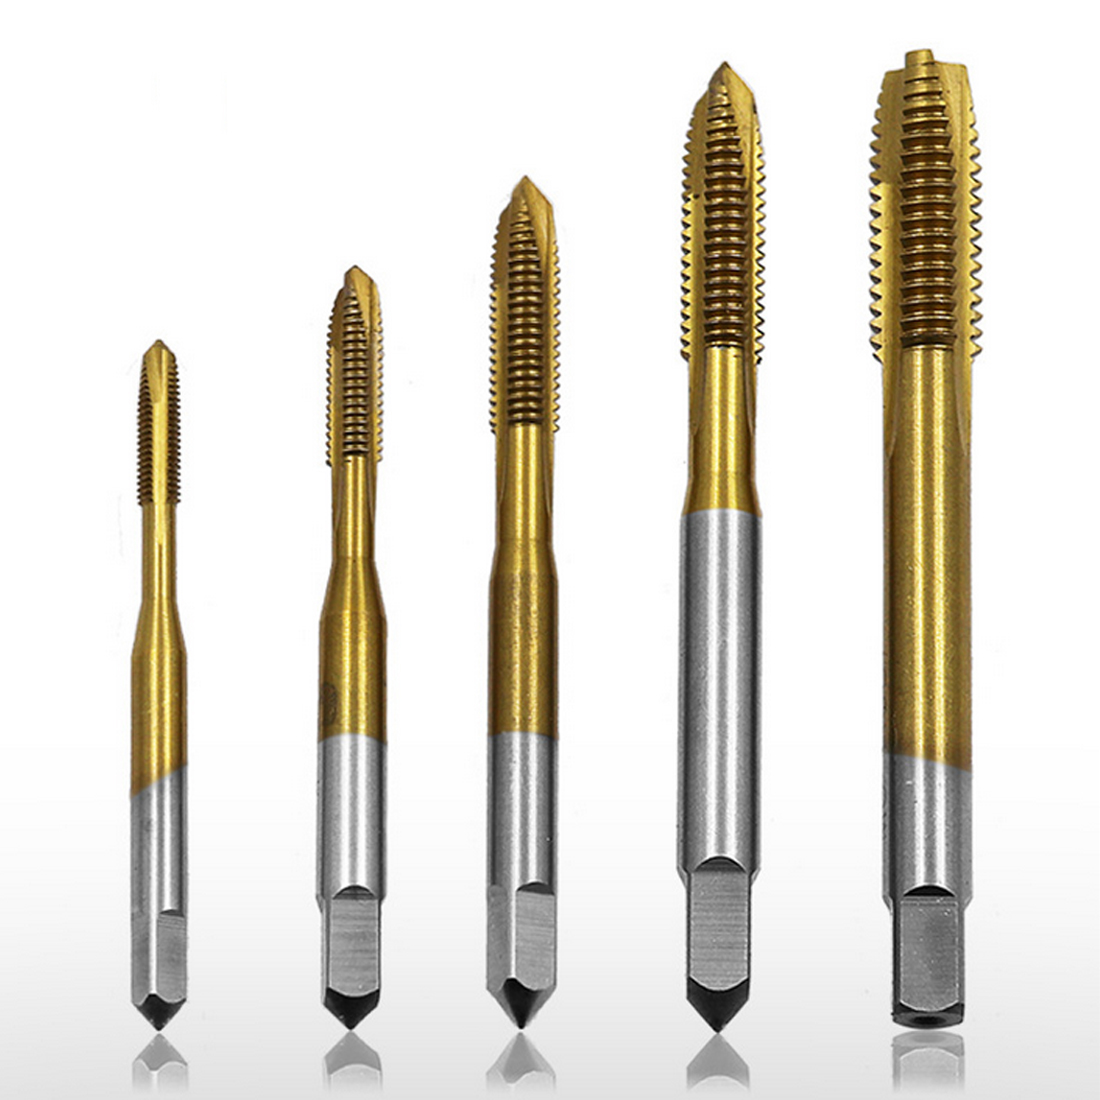 Titanium Coated Thread Tap Drill Metric Hss Spiral Fluted Machine Screw Tap M3 M4 M5 M6 M8 Spiral Pointed Taps